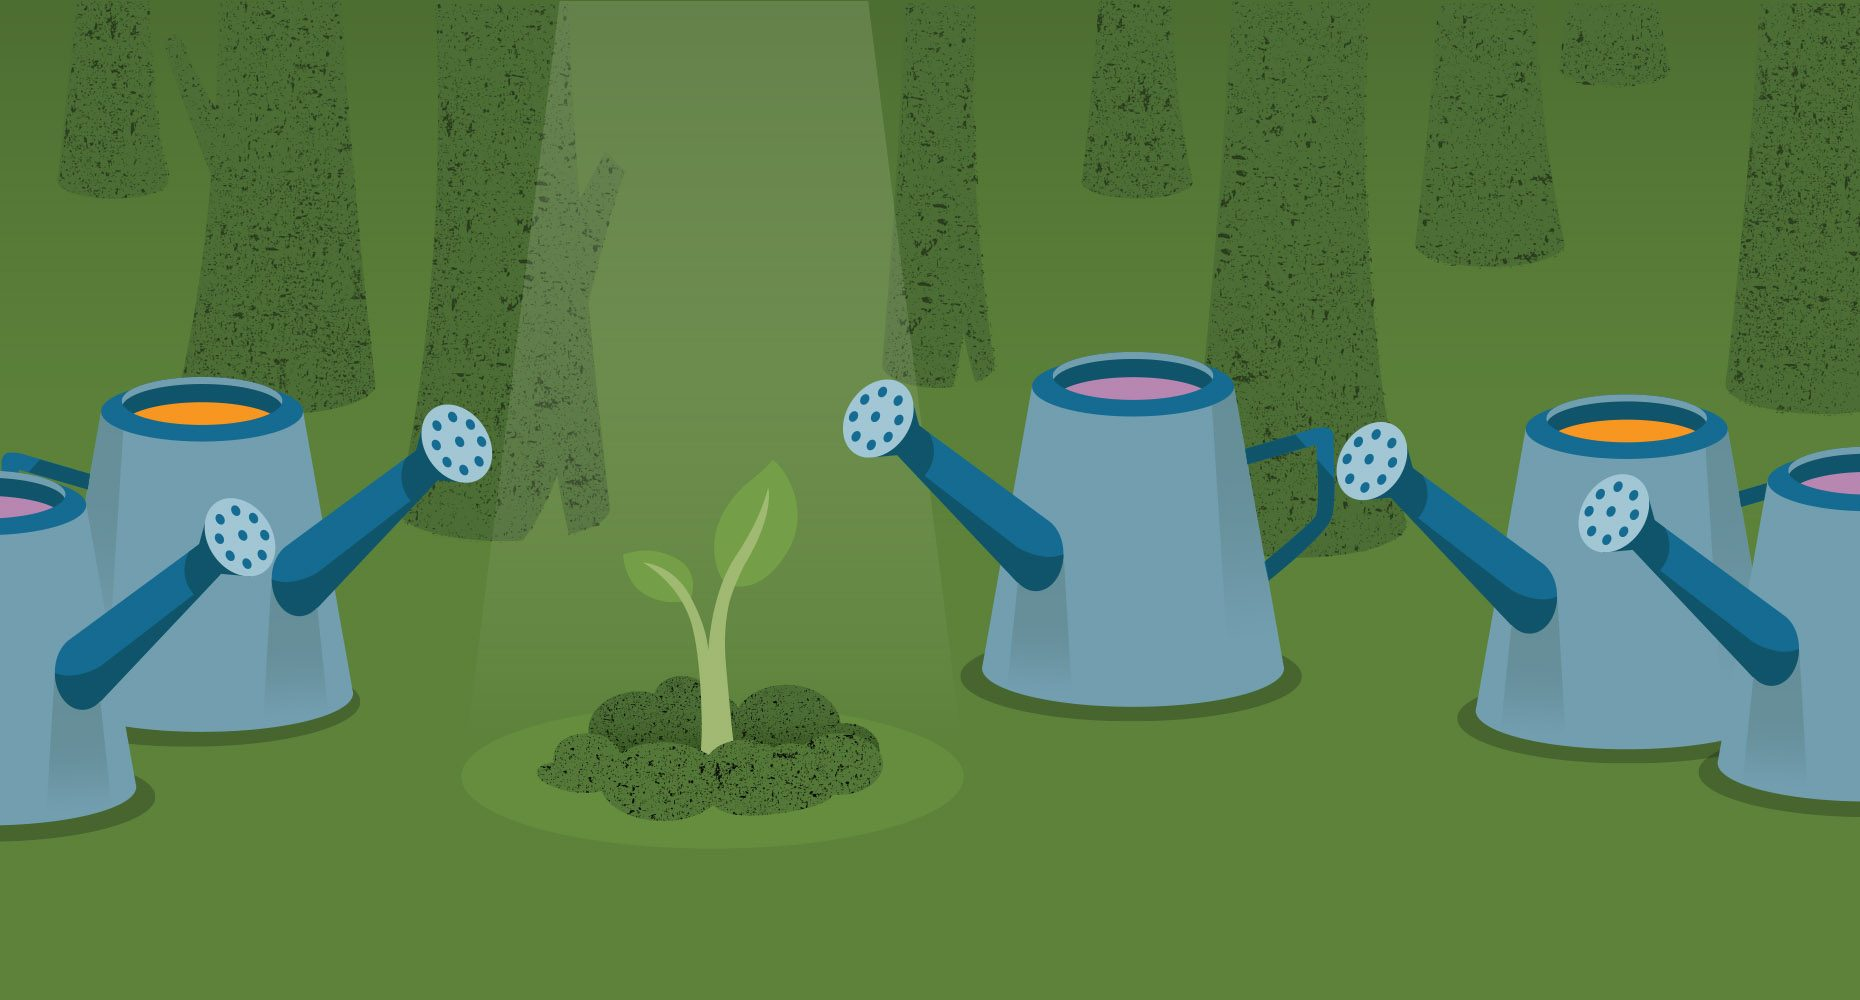 Illustration of plant and watering cans to represent ways to make your donation accomplish more